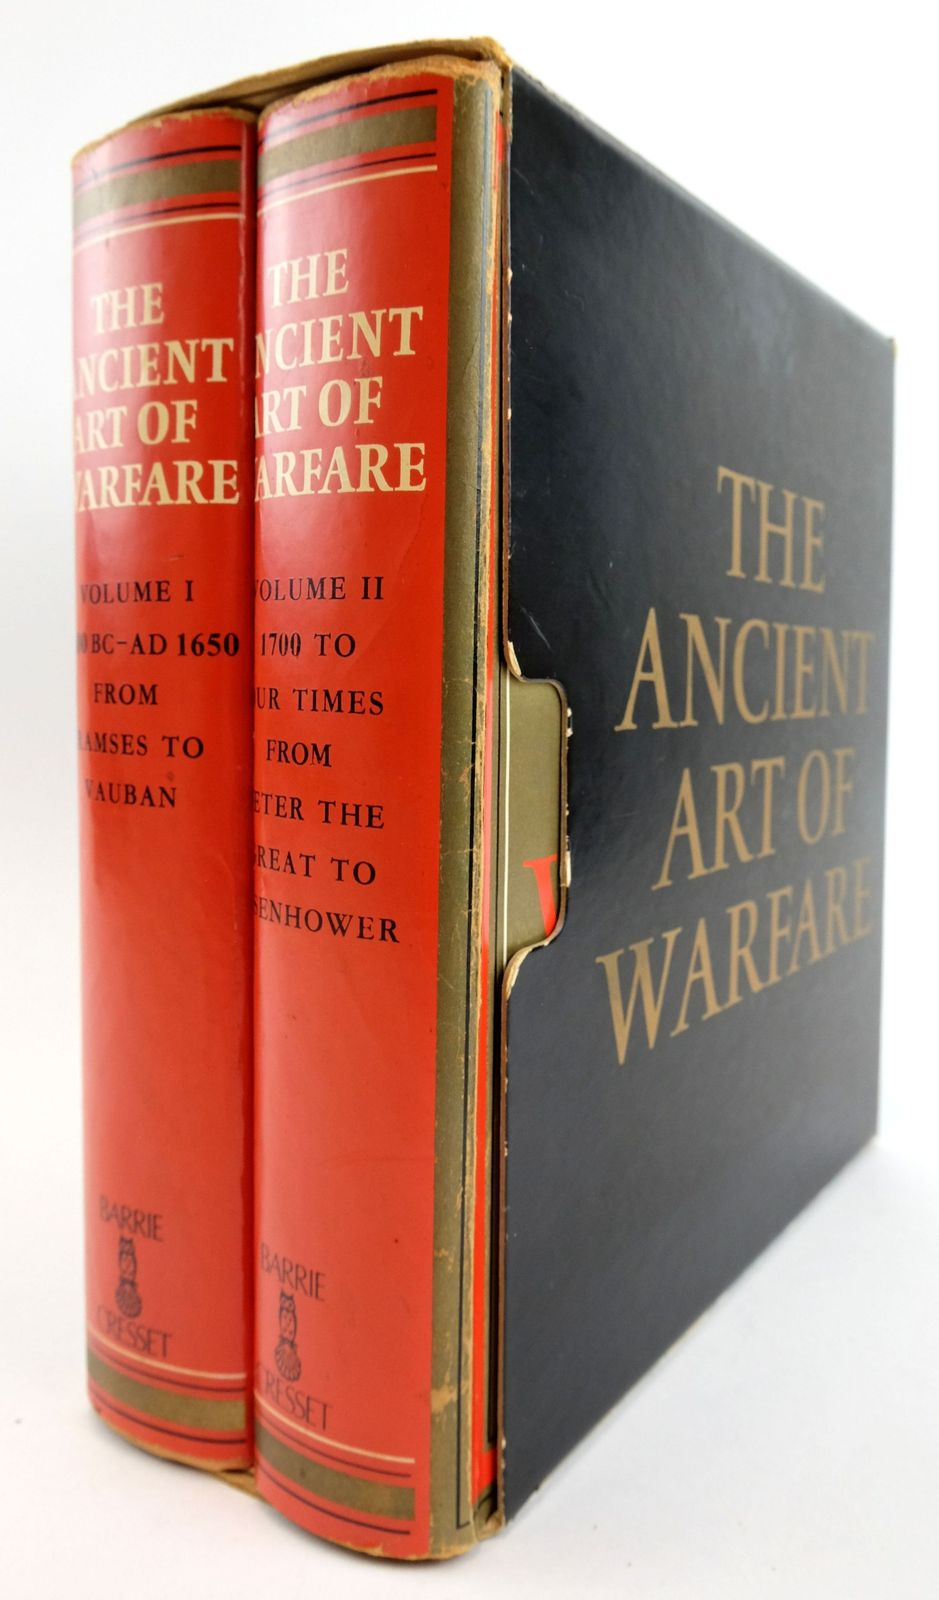 Photo of THE ANCIENT ART OF WARFARE (2 VOLUMES)